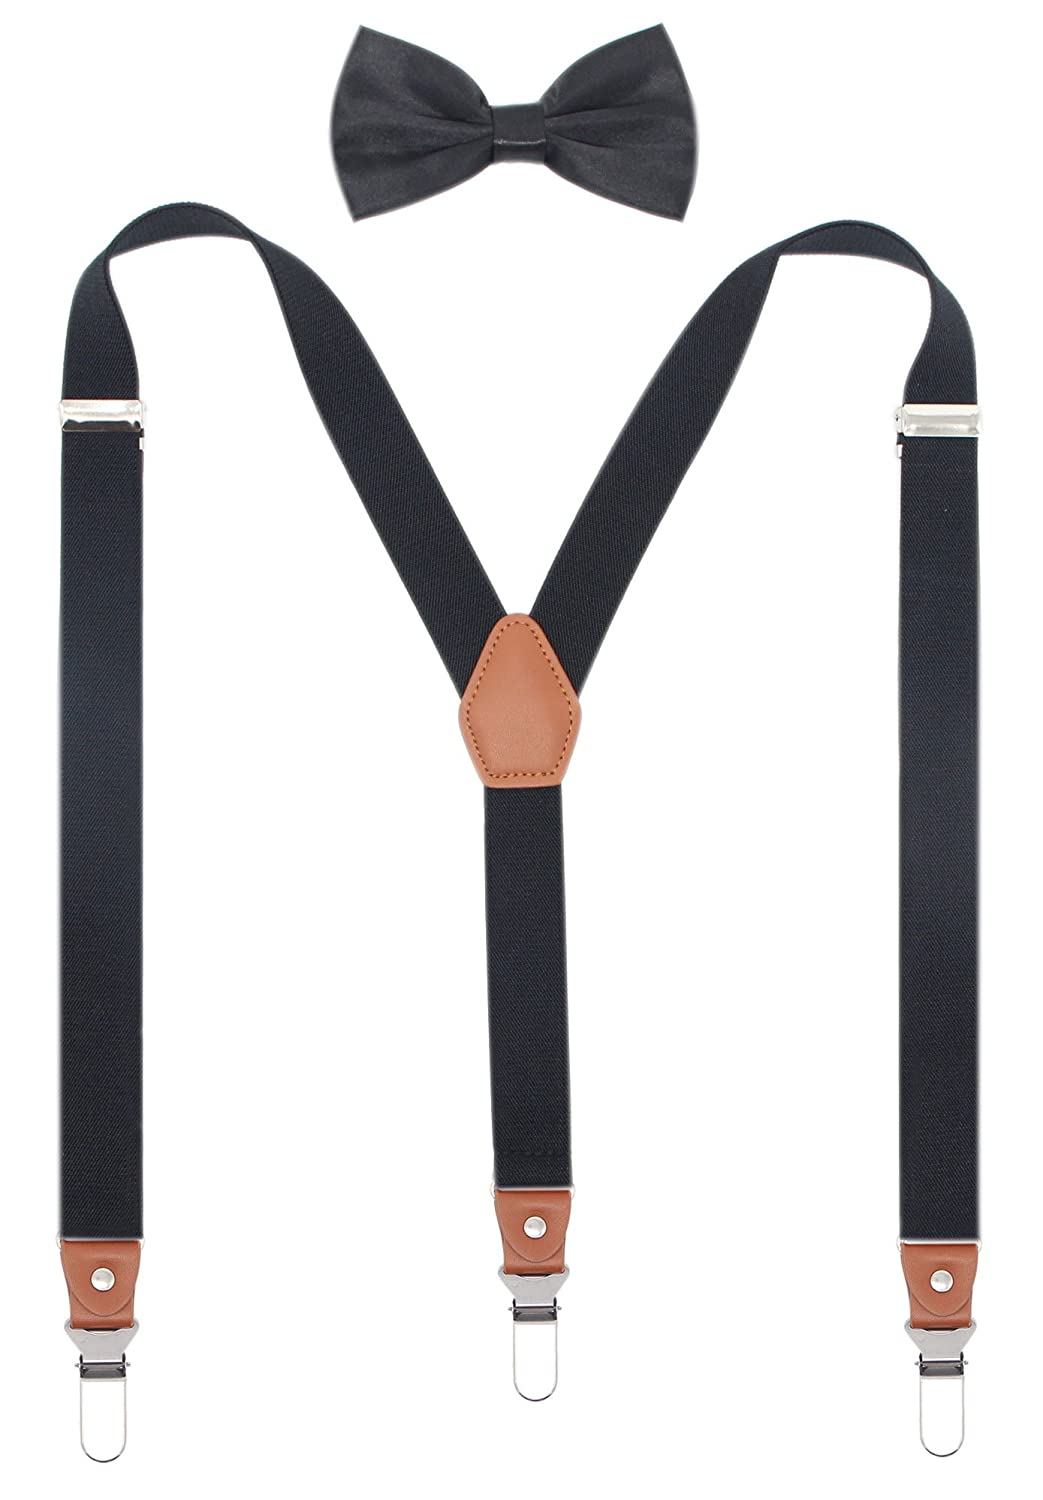 Men Leather Suspenders and Pre Tied Bowtie Set Strong Clips Braces for Trousers